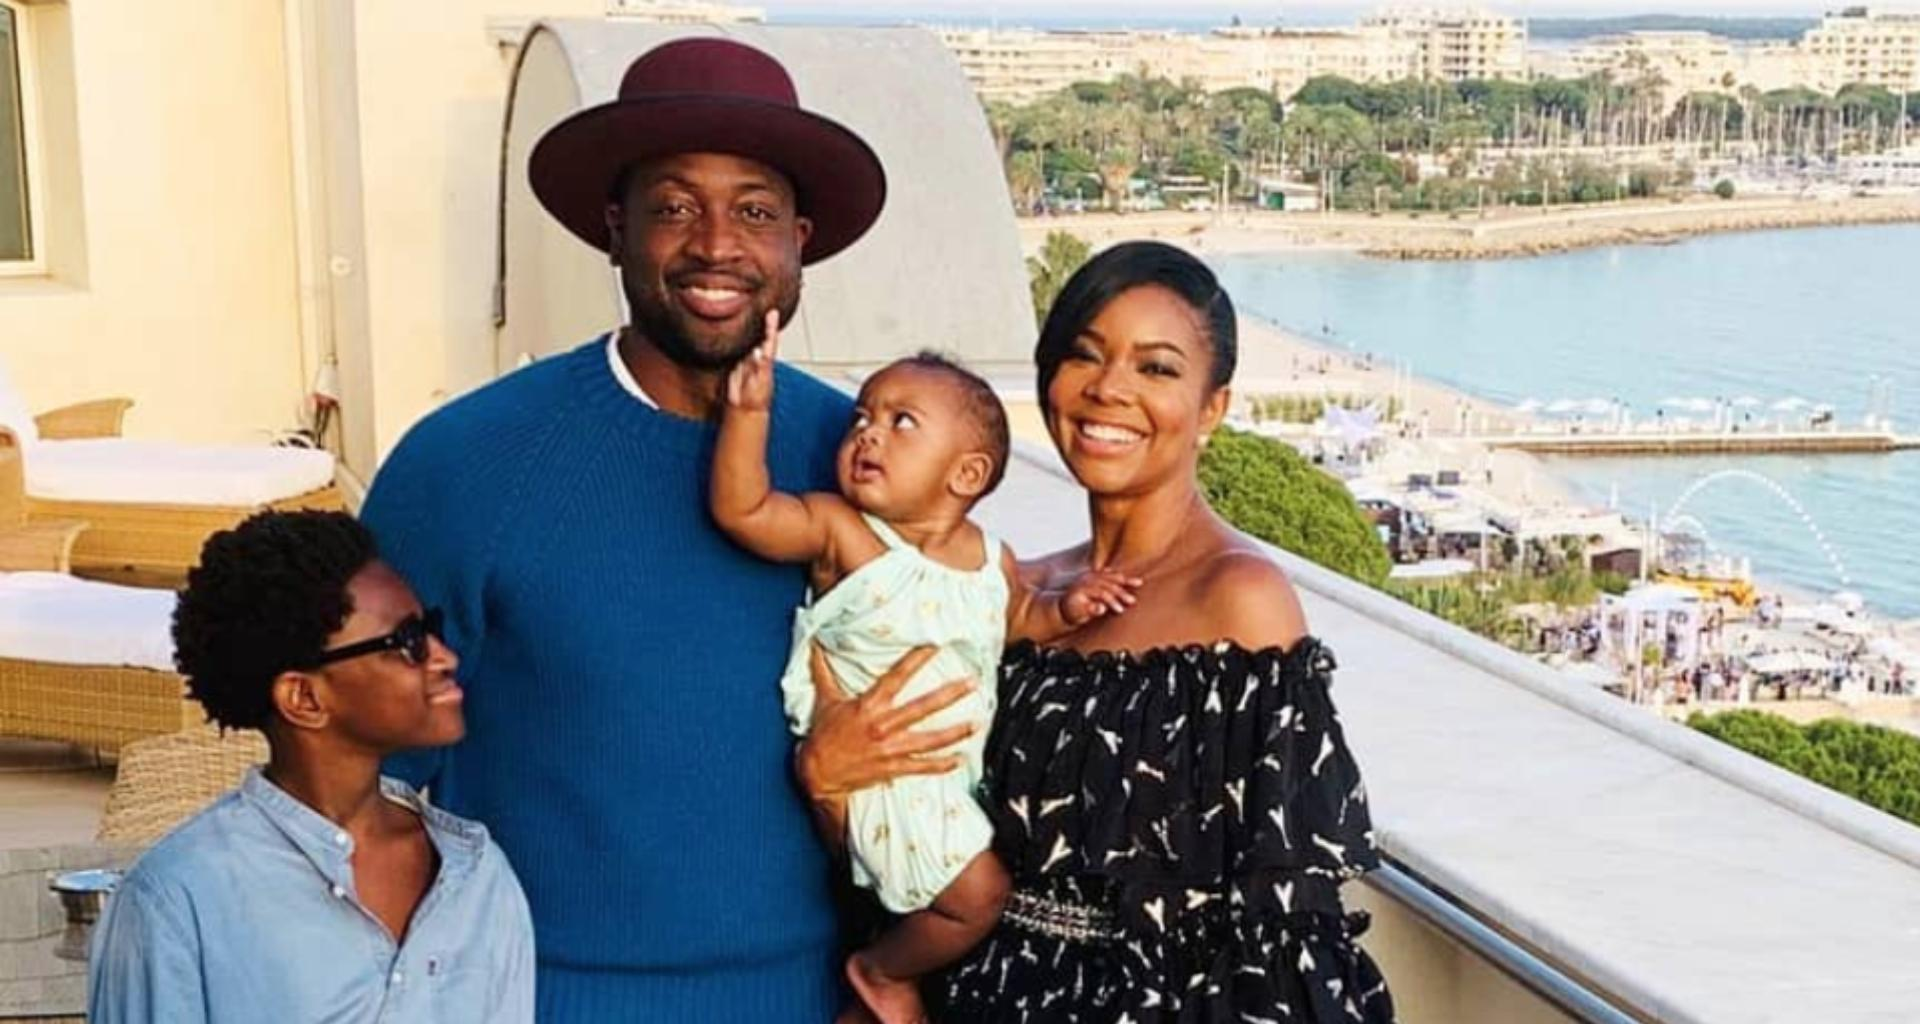 Gabrielle Union Is The Happiest On Her Vacay With Dwyane Wade - See The Gorgeous Photos